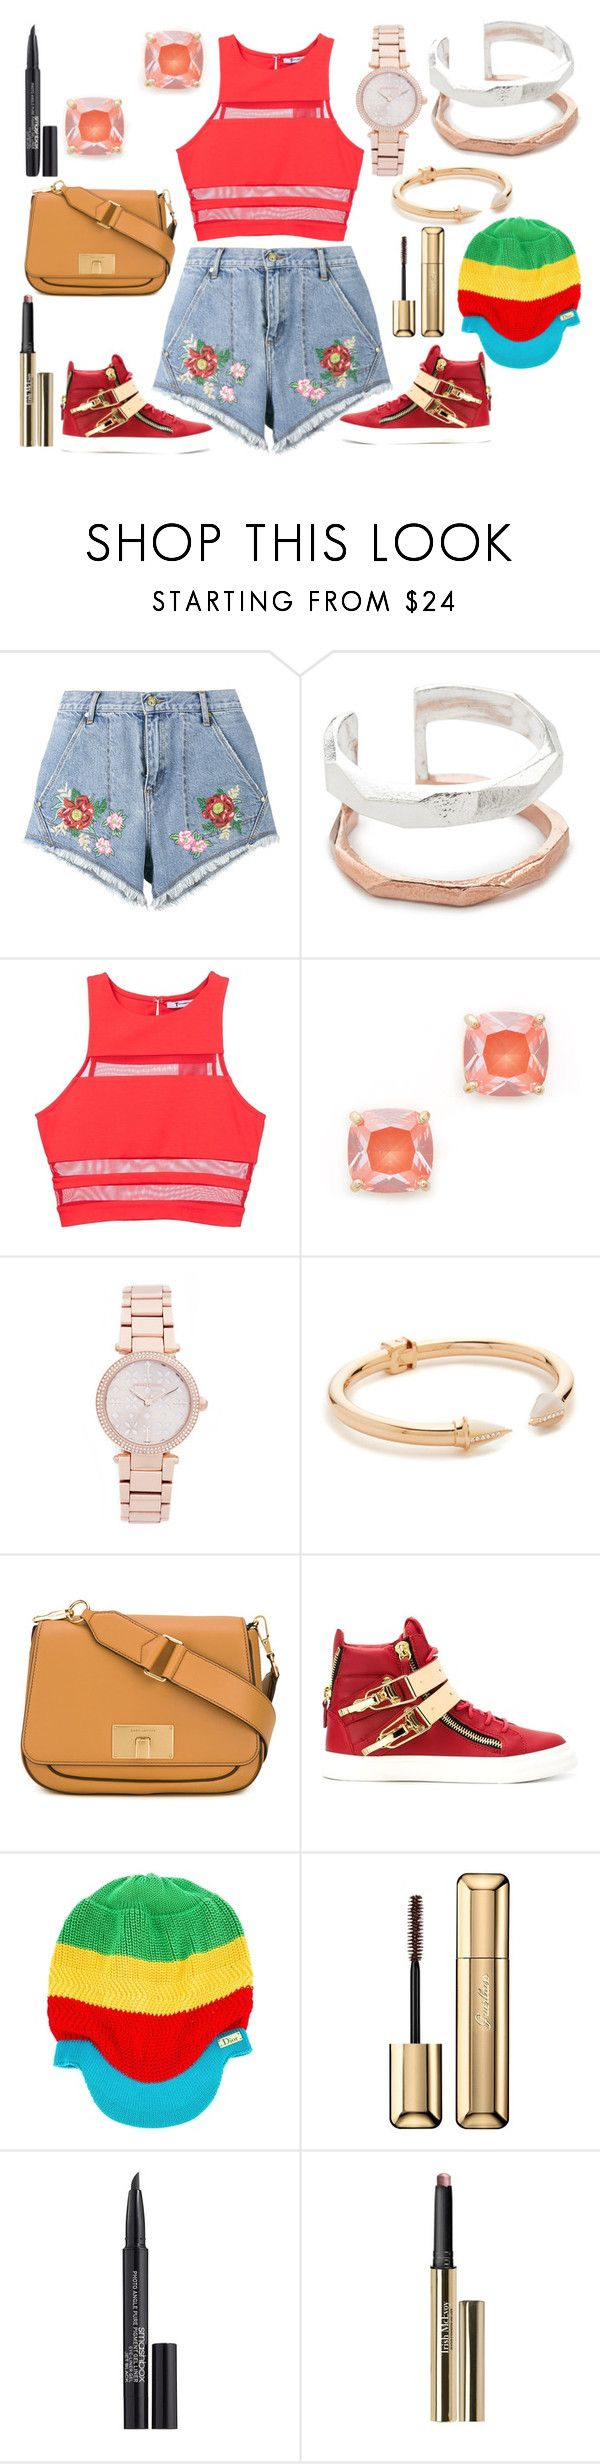 """casuals"" by hillarymaguire ❤ liked on Polyvore featuring House of Holland, Maya Magal, T By Alexander Wang, Kate Spade, Michael Kors, Vita Fede, Marc Jacobs, Giuseppe Zanotti, Christian Dior and Guerlain"